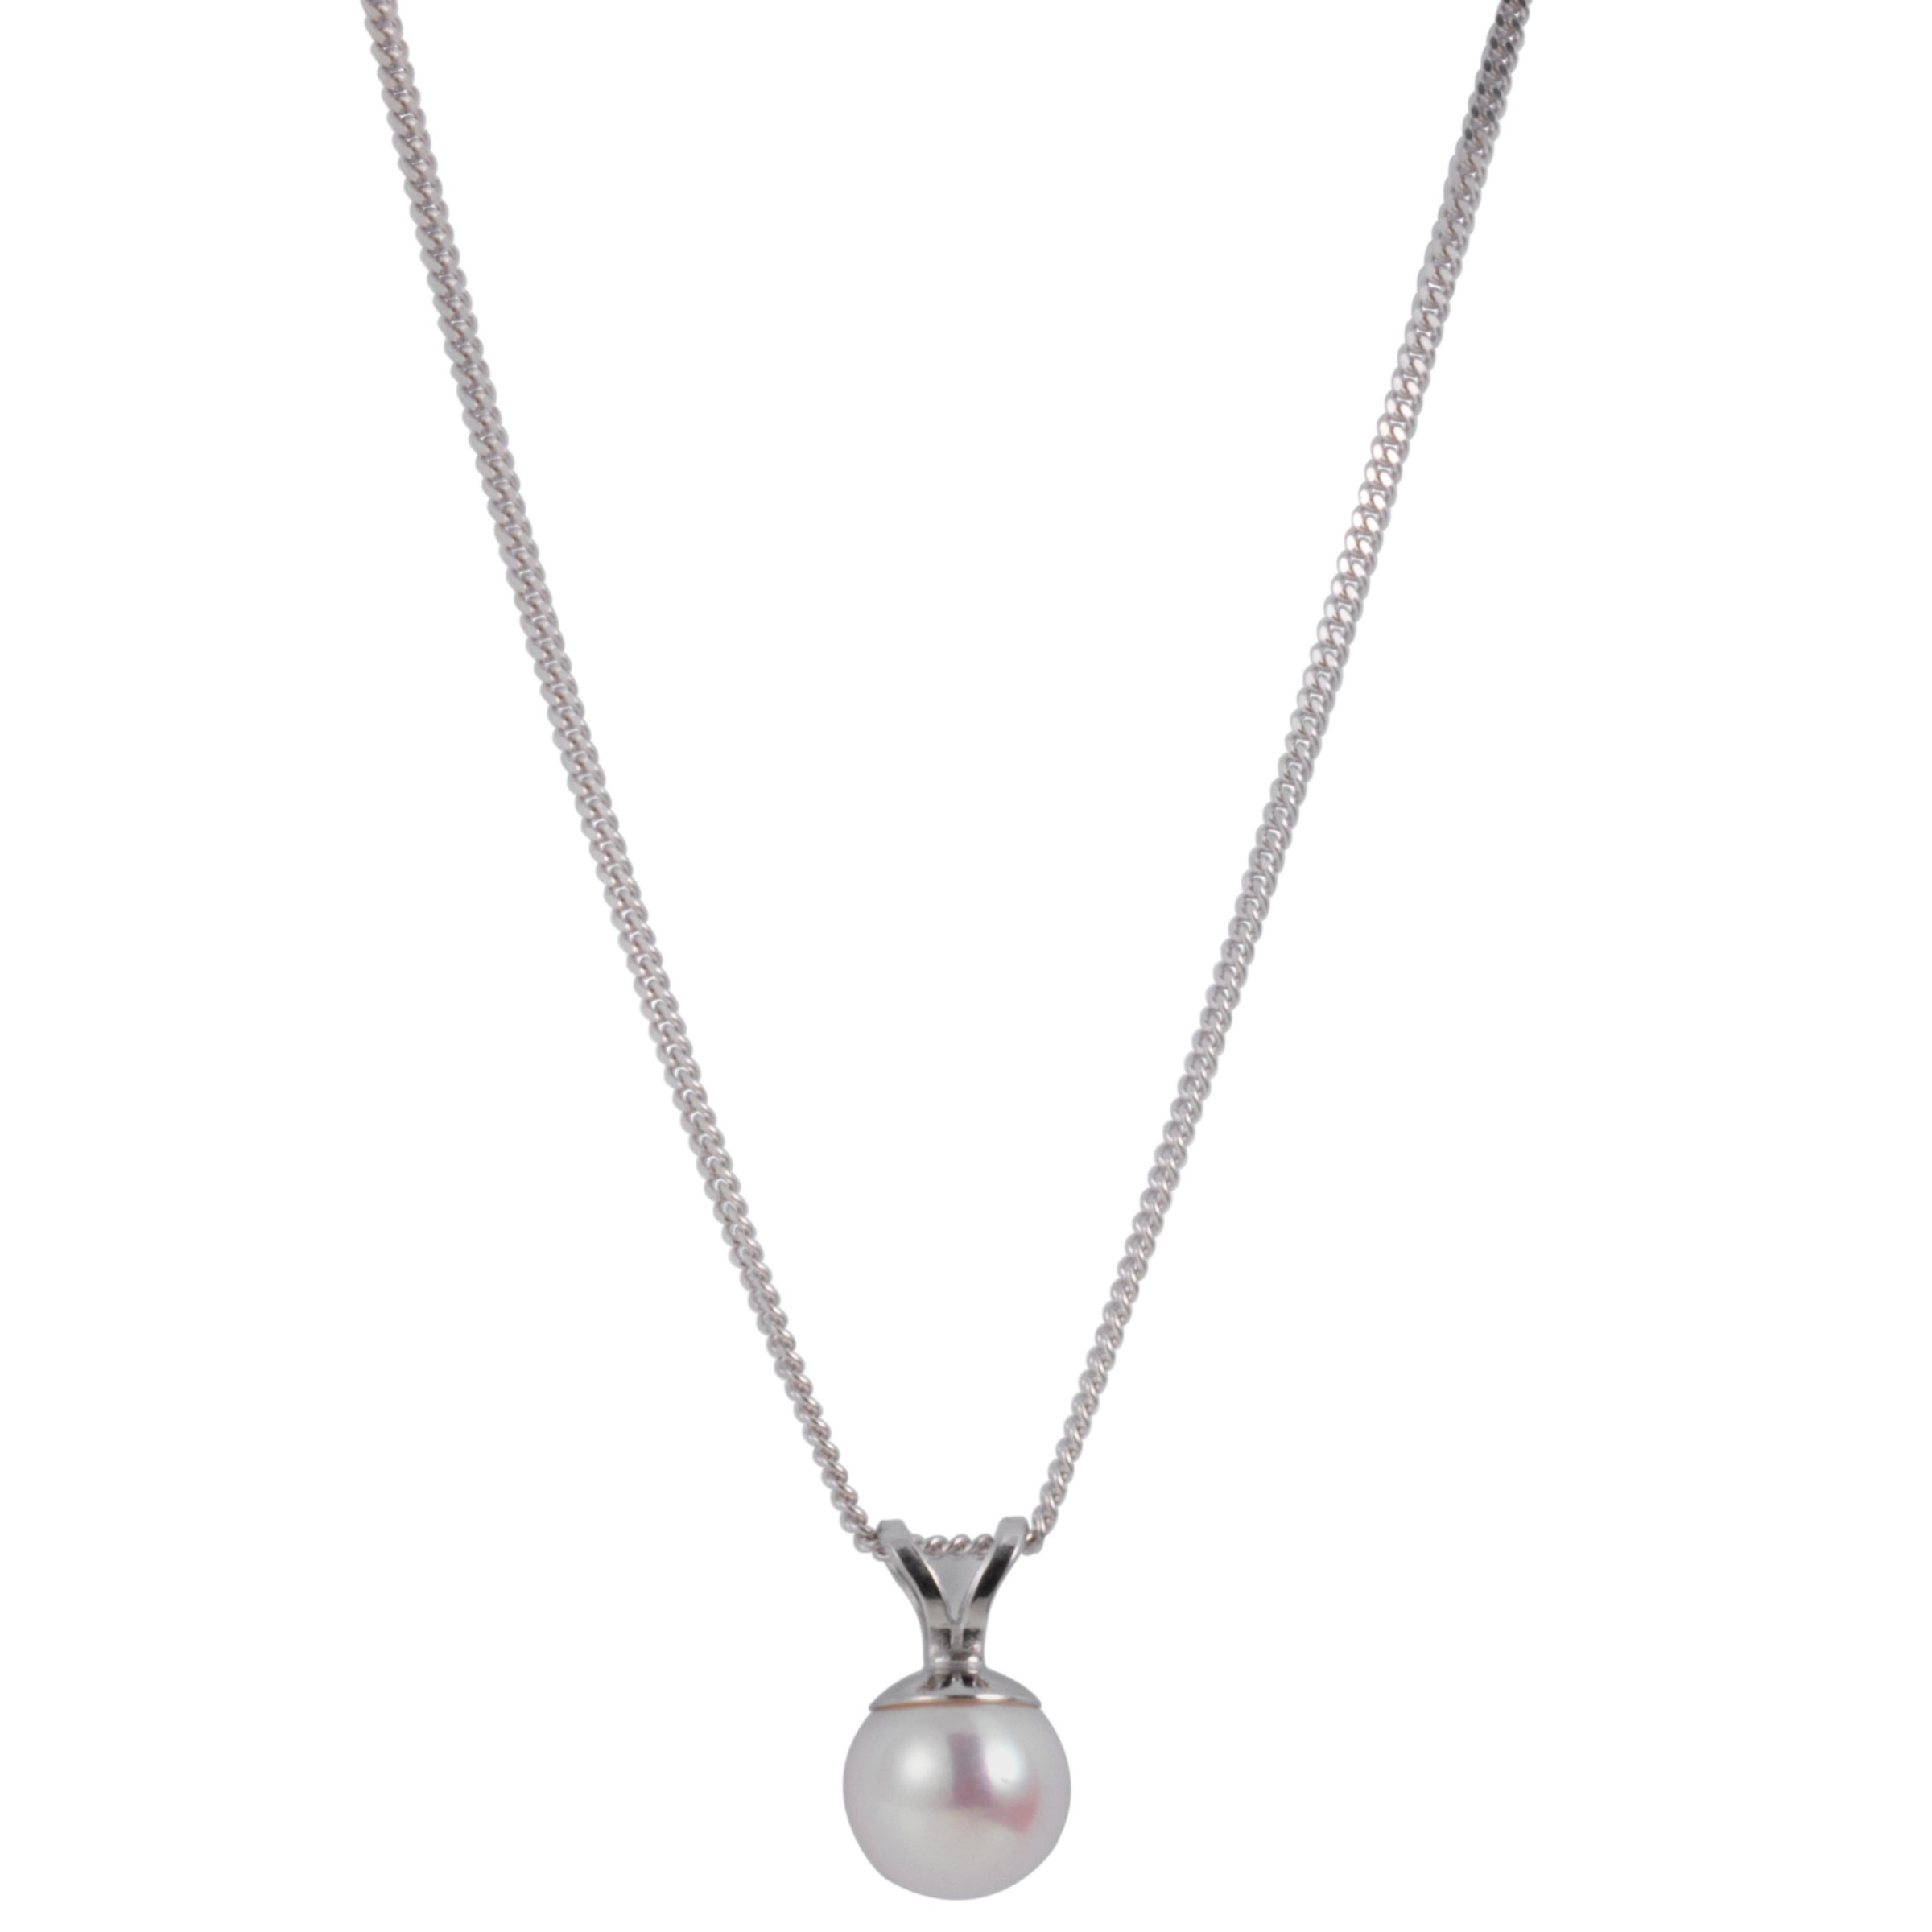 Cultured Pearl Ball Pendant Necklace with White Gold Adjuster Chain